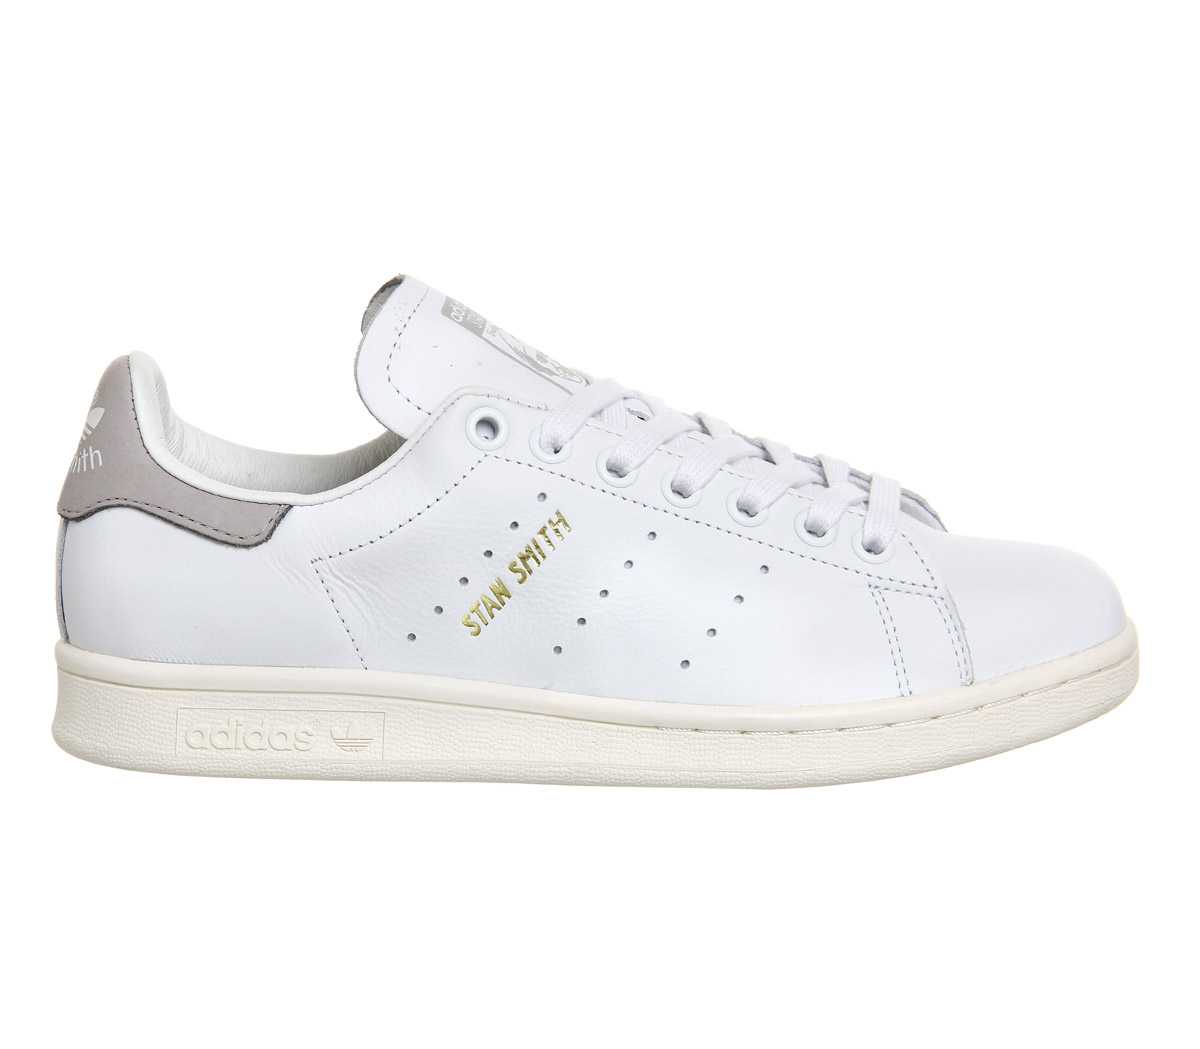 adidas white & grey stan smith trainers